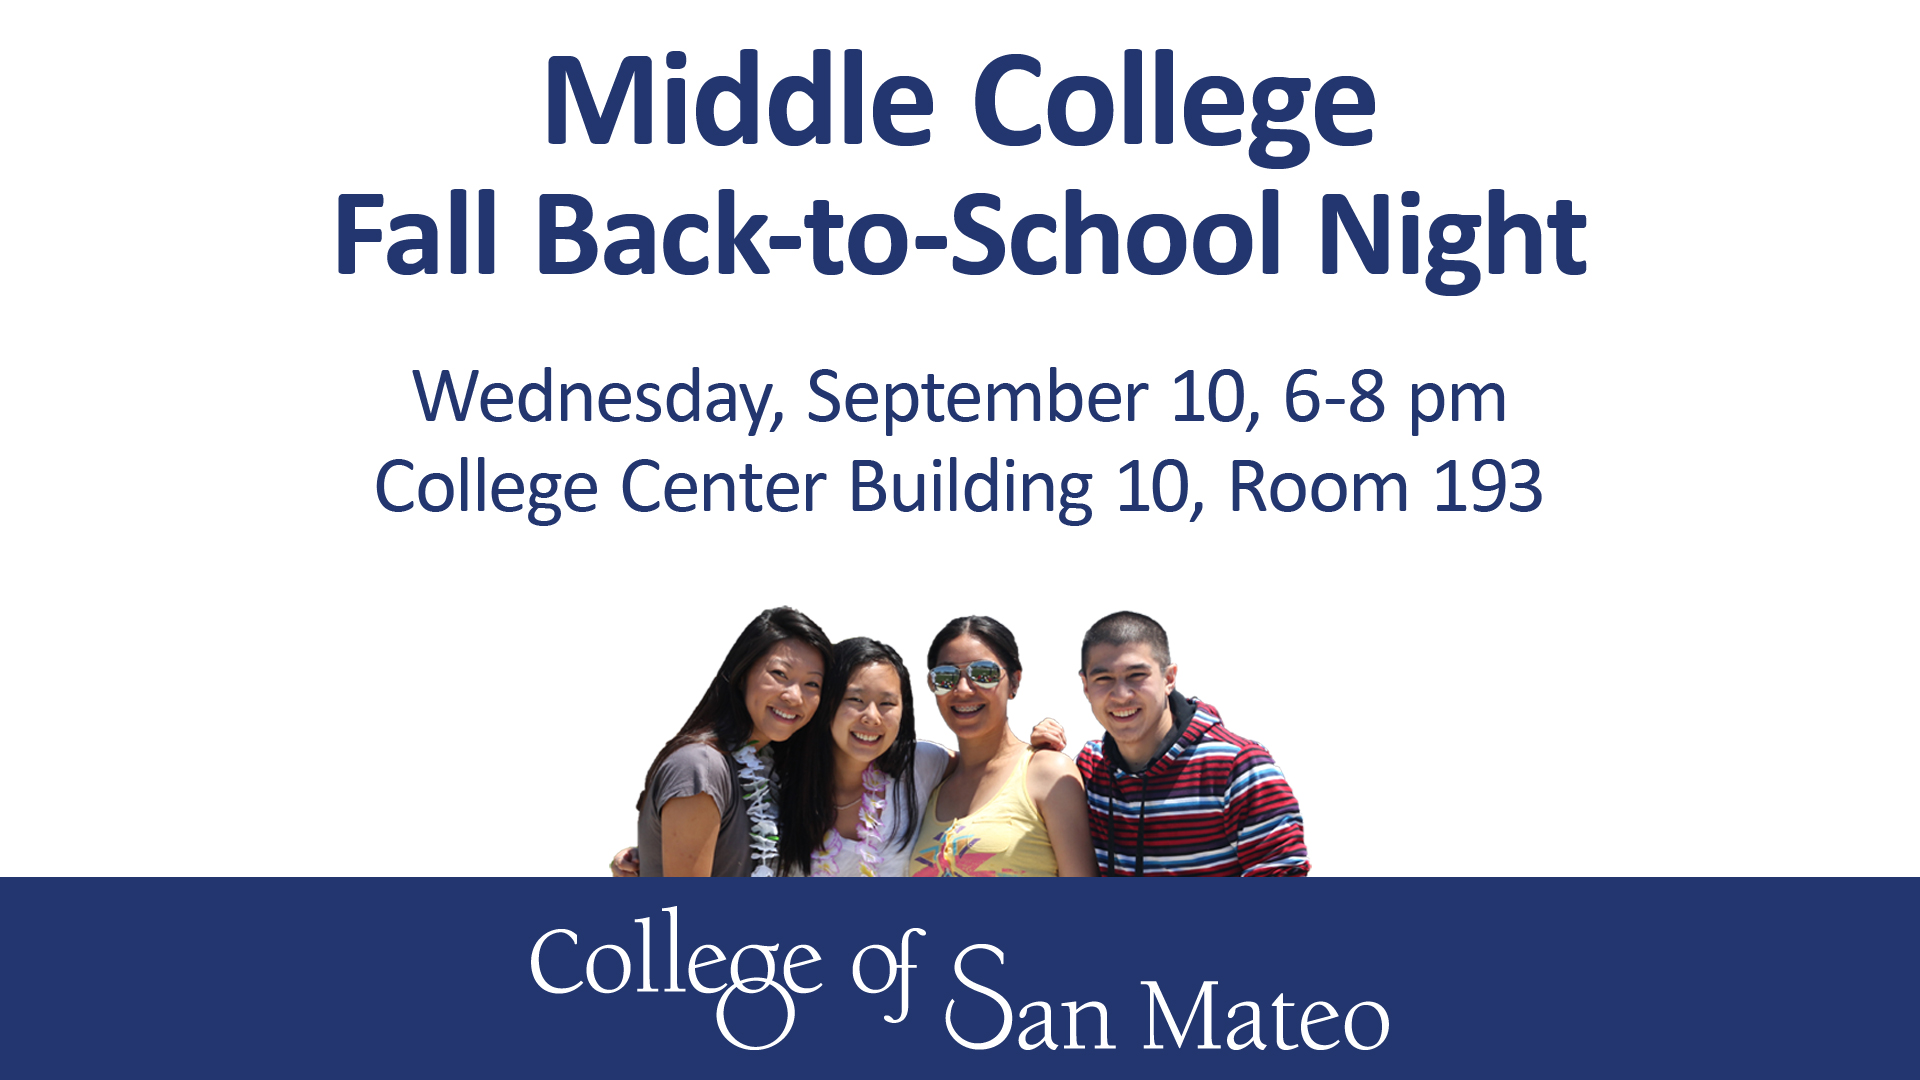 Middle College Fall Back-to-School Night